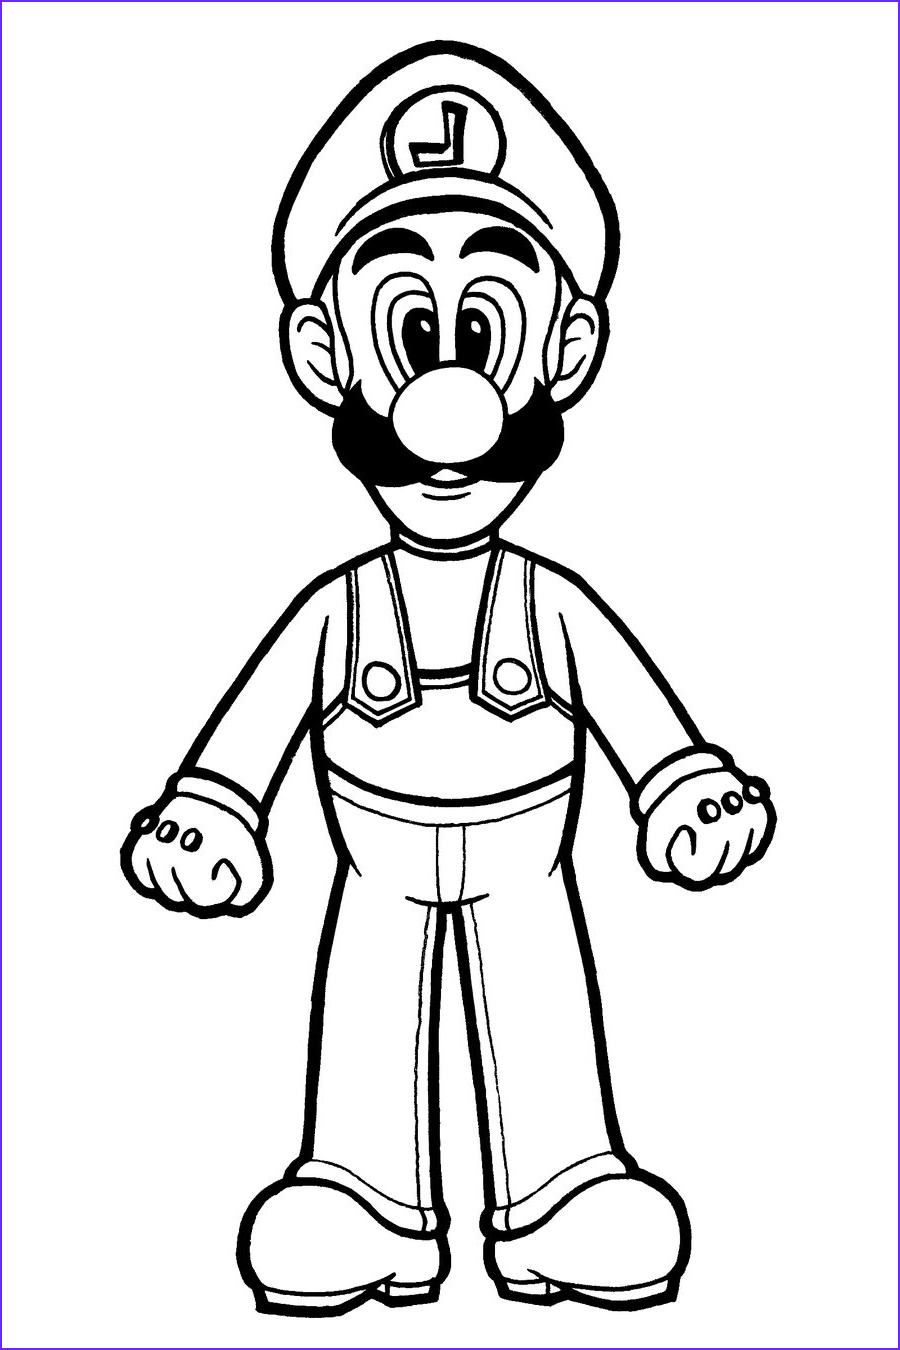 Luigi Coloring Pages Elegant Photos Free Printable Luigi Coloring Pages for Kids